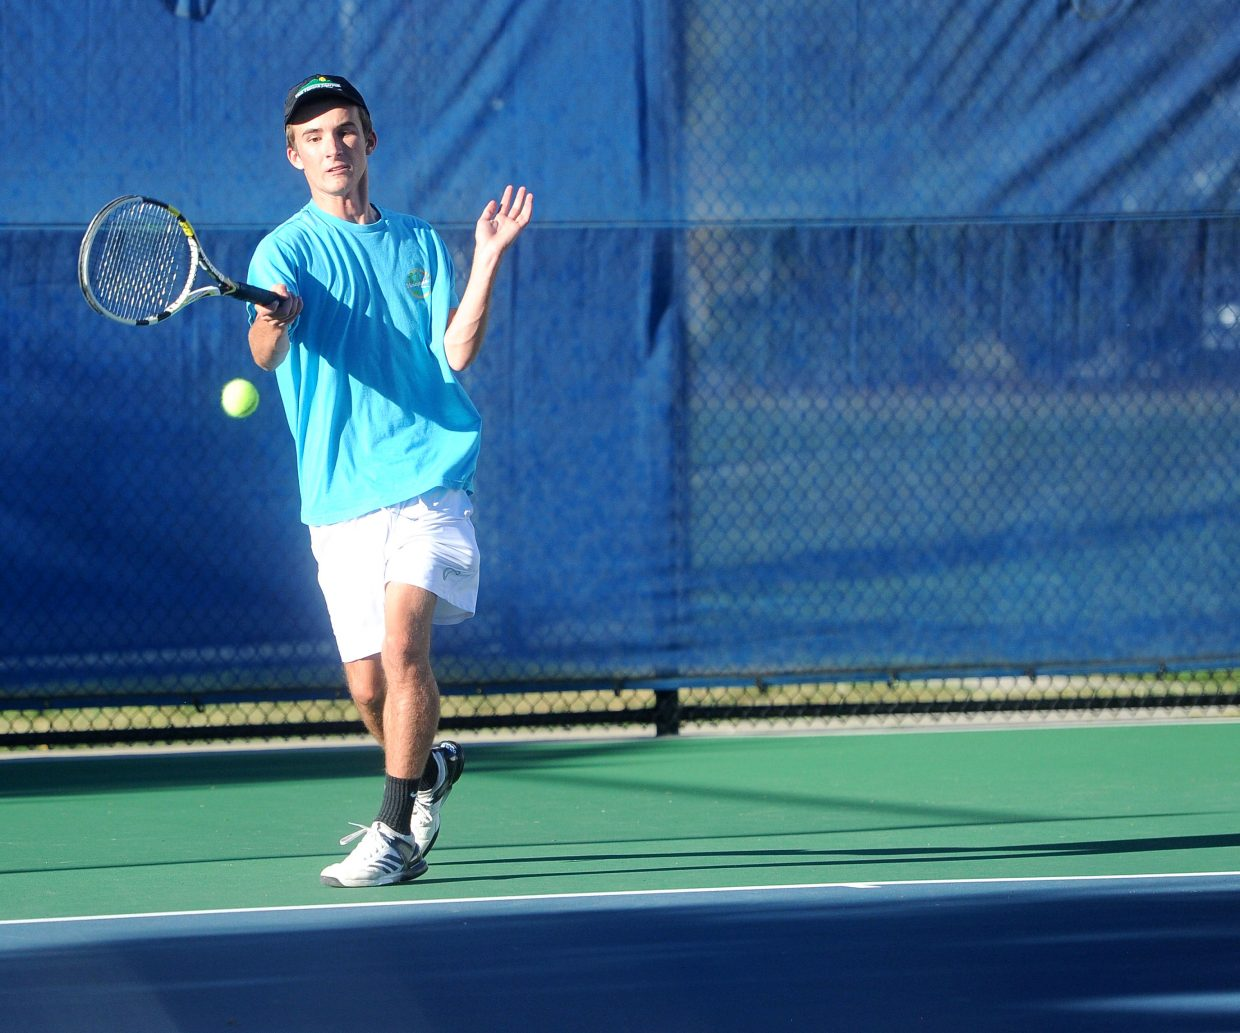 Ethan Paulus delivers a shot against Roy Lundeen in the challenge match for No. 2 singles on Wednesday, Sept. 12.